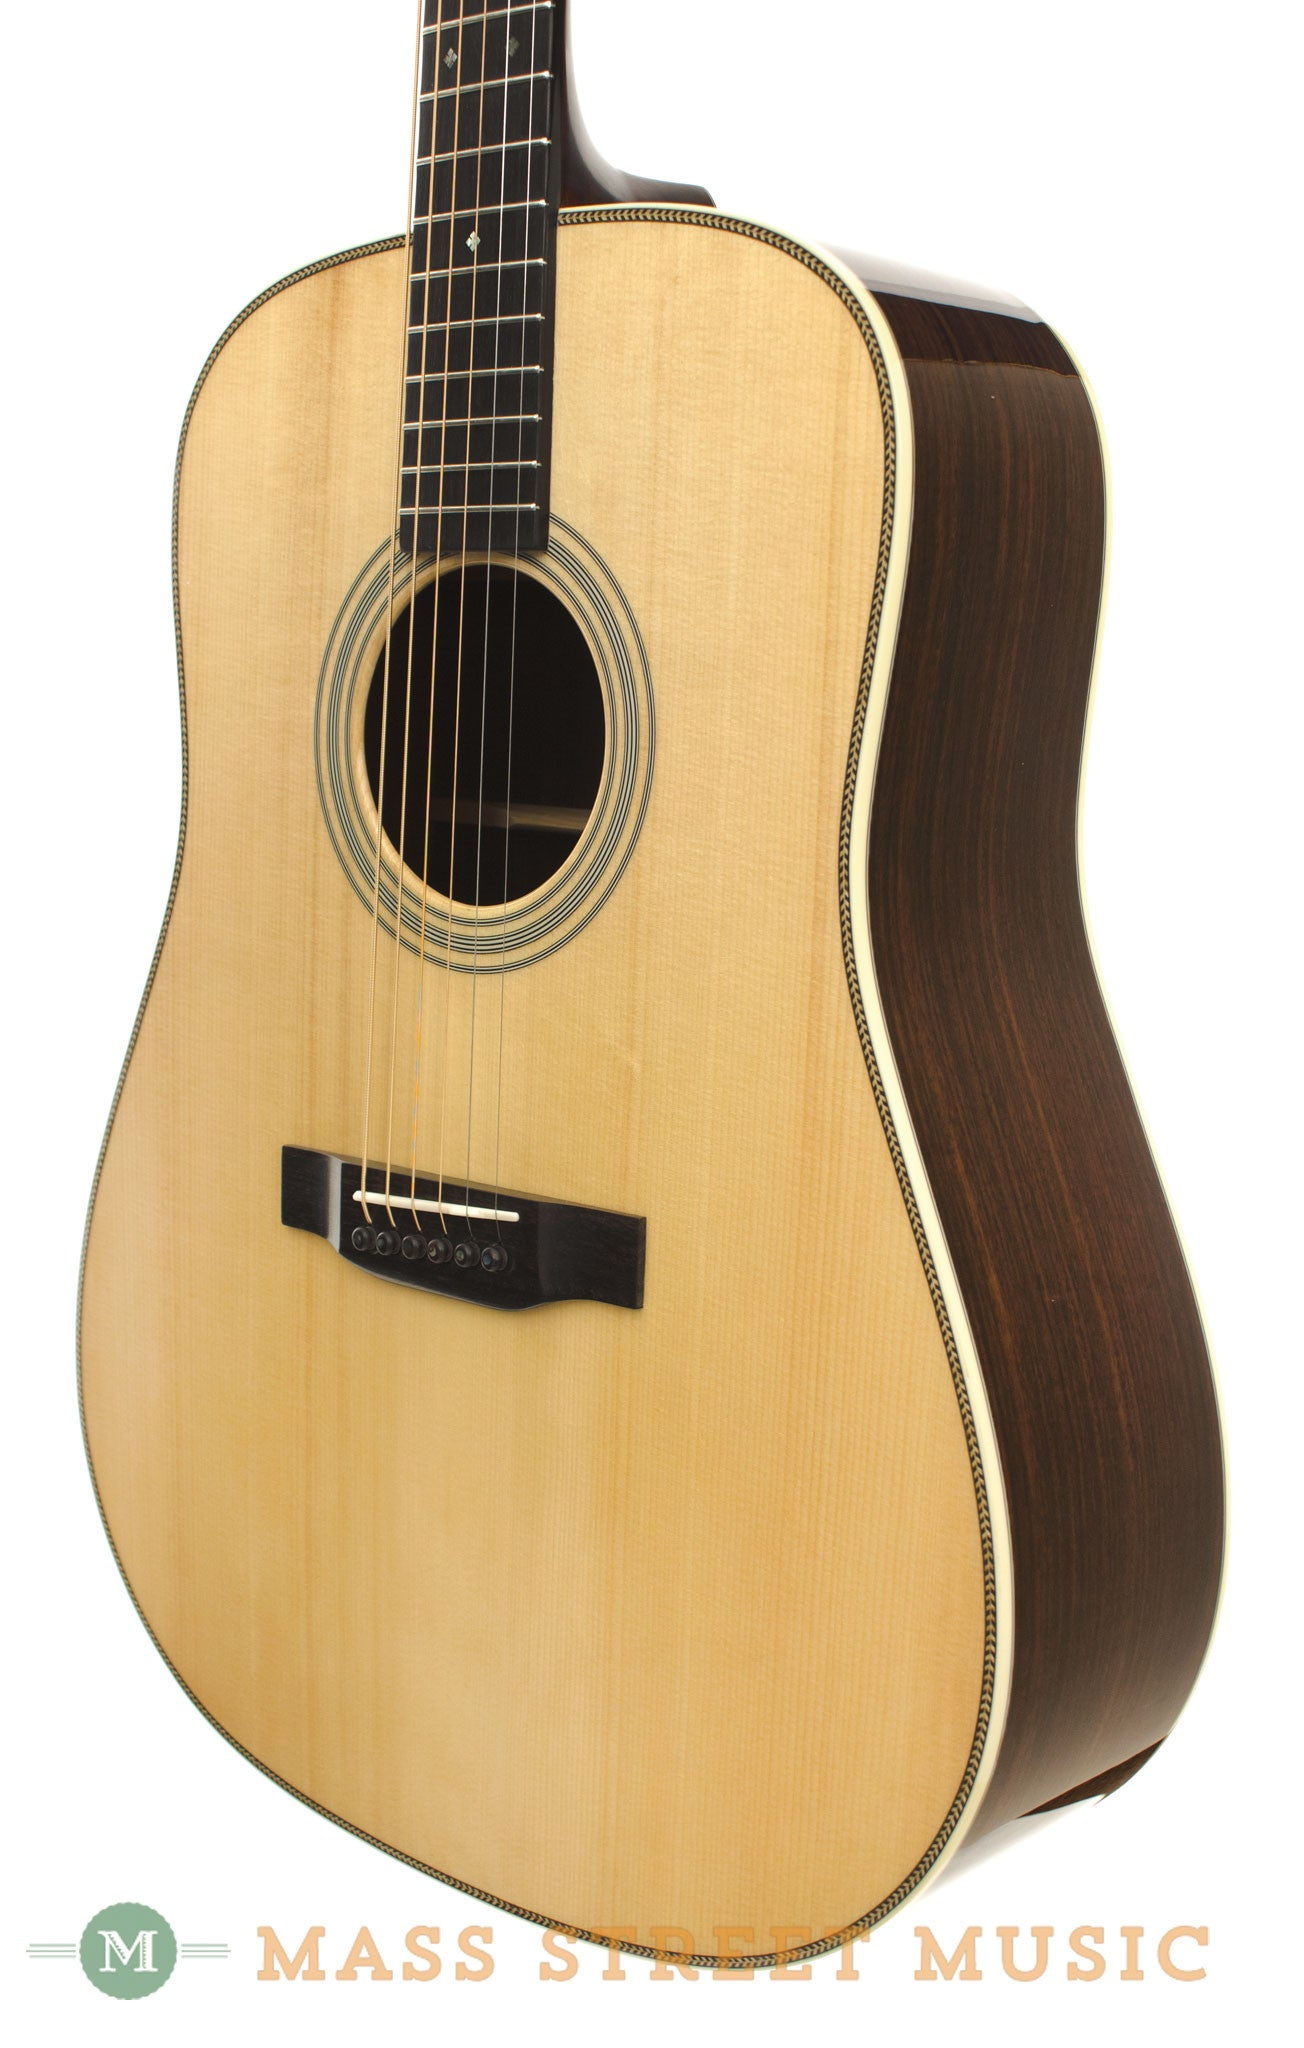 eastman e8d acoustic guitar used near mint case included mass street music store. Black Bedroom Furniture Sets. Home Design Ideas